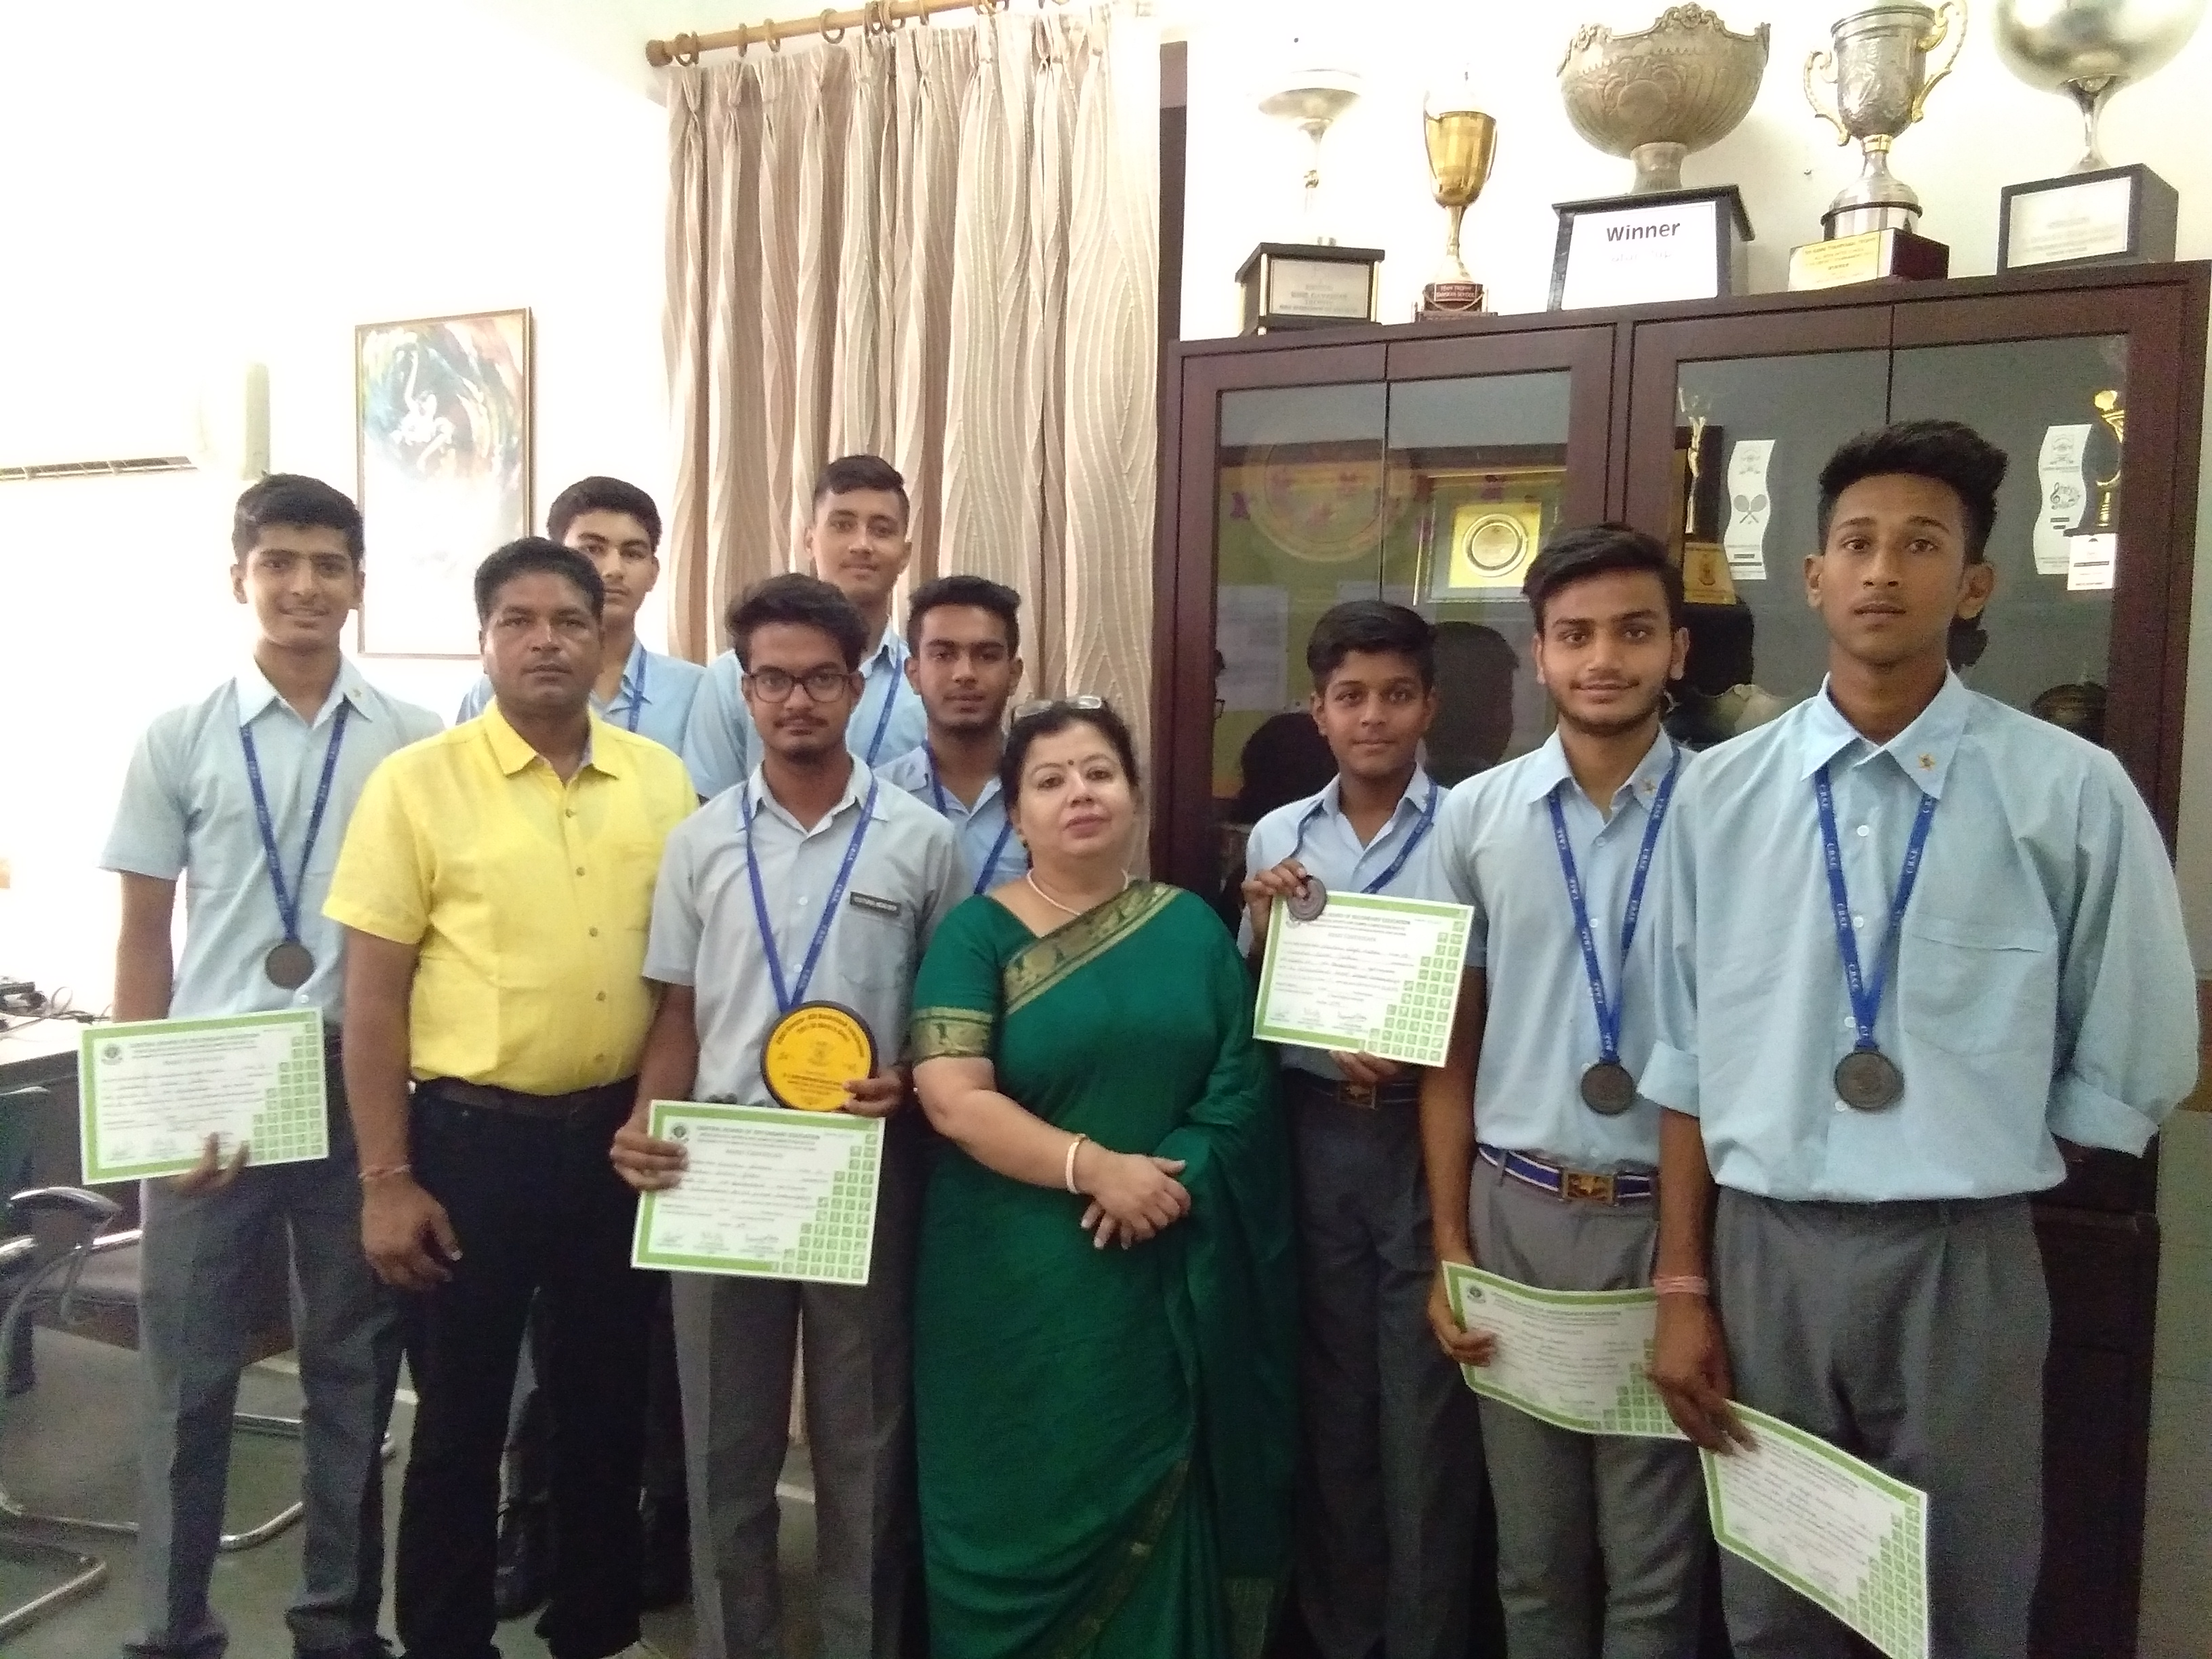 Sanskar School wins Bronze Medal in the CBSE Cluster XIV Basketball Tournament